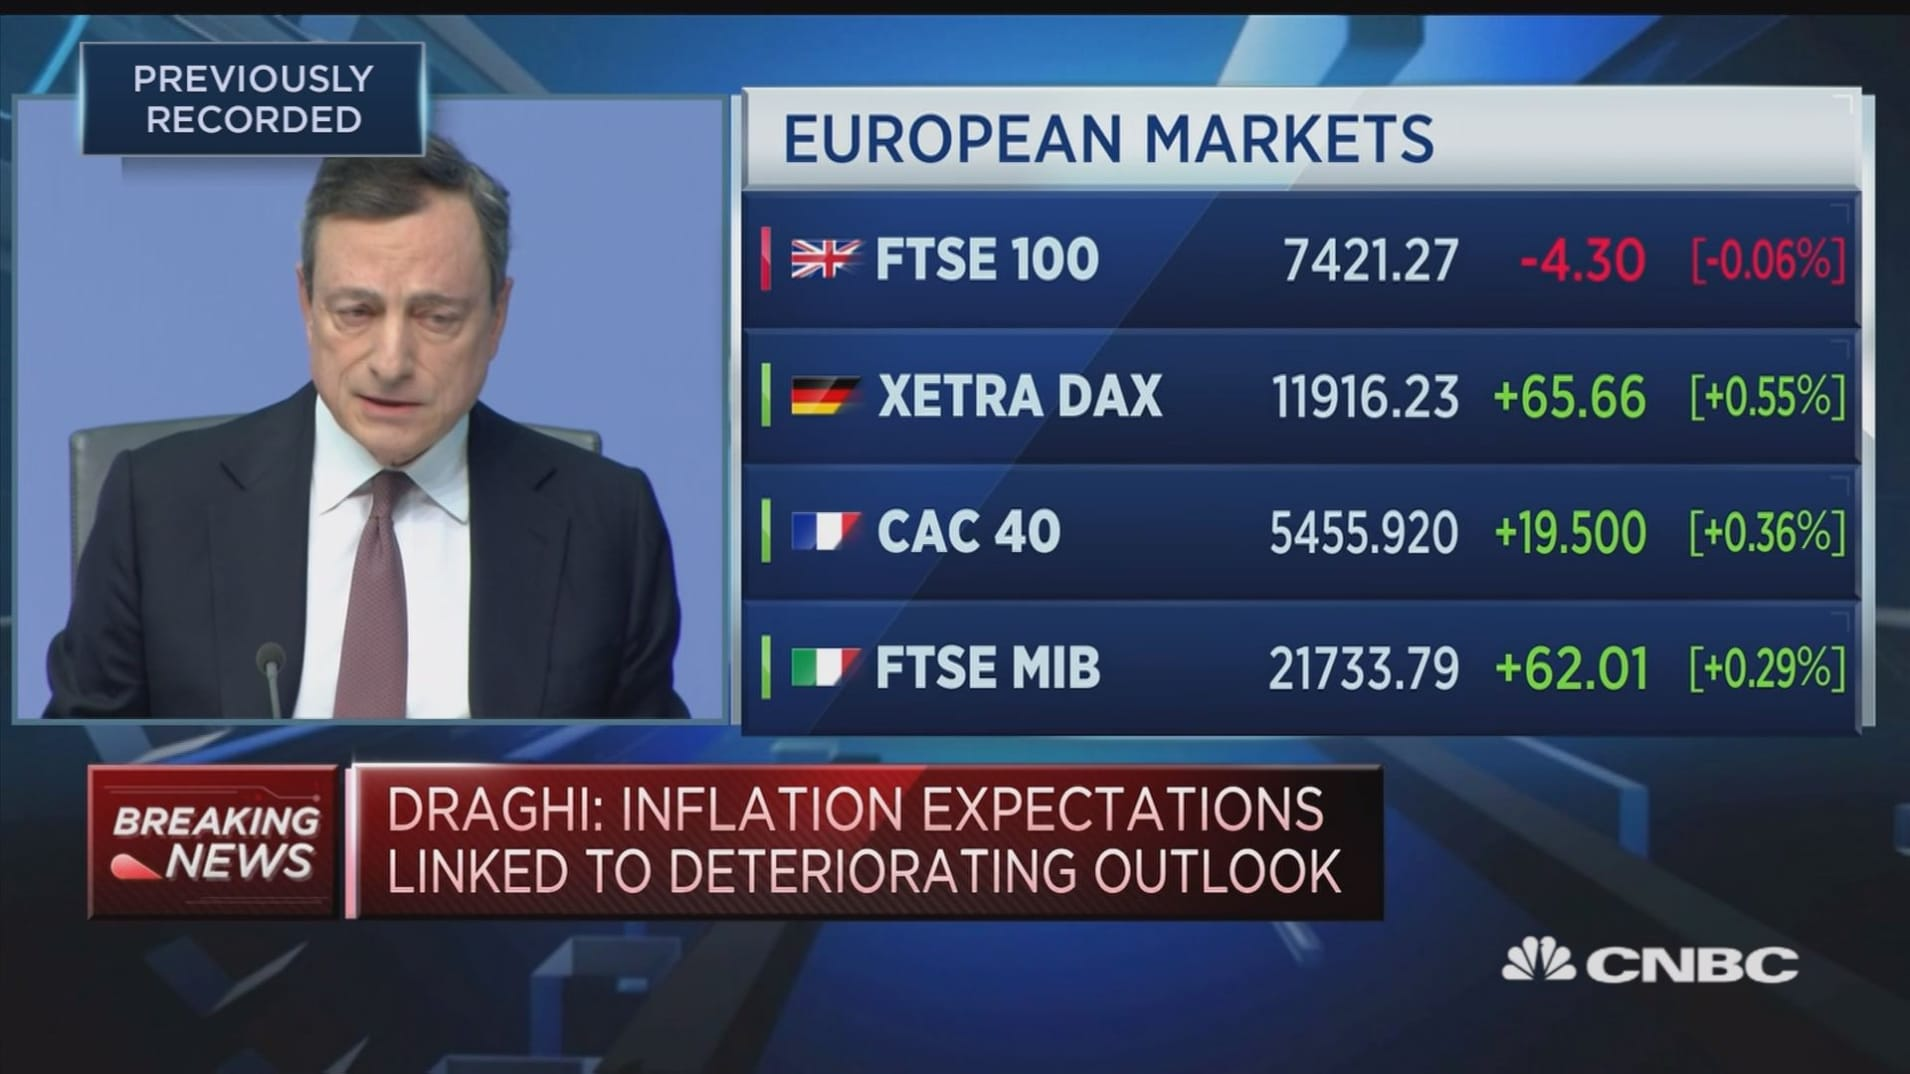 ECB's Draghi says Trump's tariff threats are hurting confidence in Europe